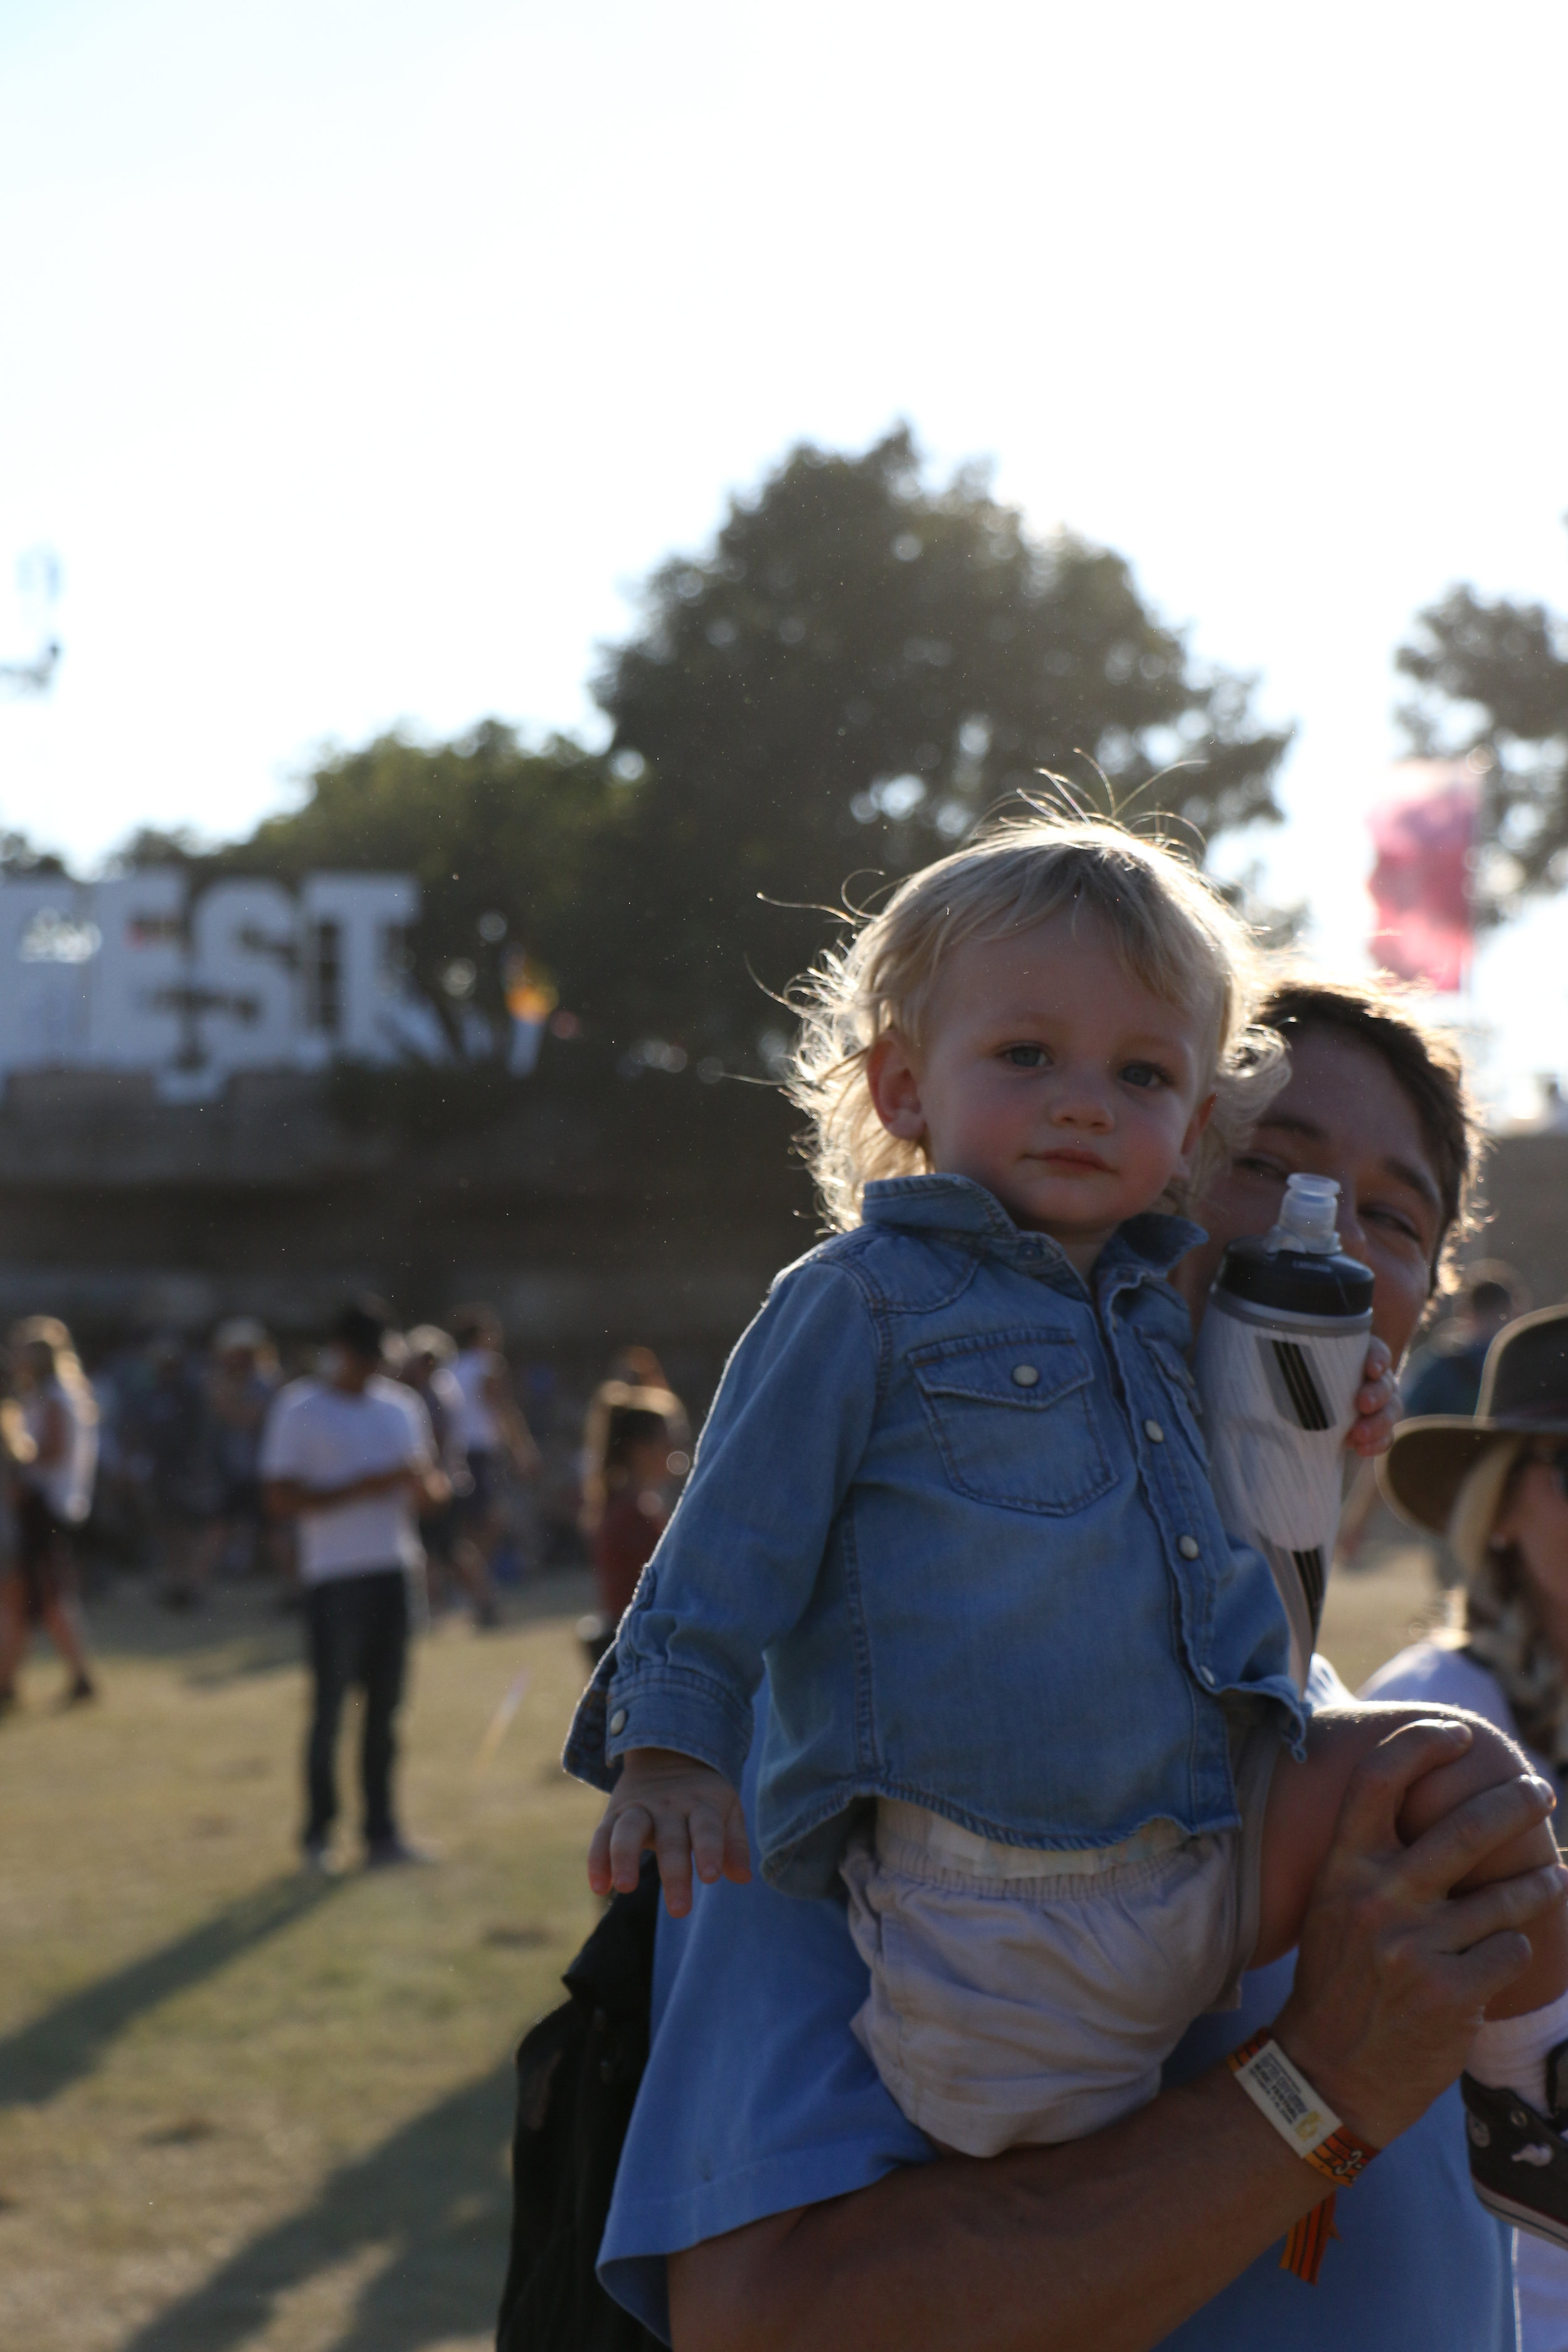 Festival fashion is styled by all, even the youngest of fans.